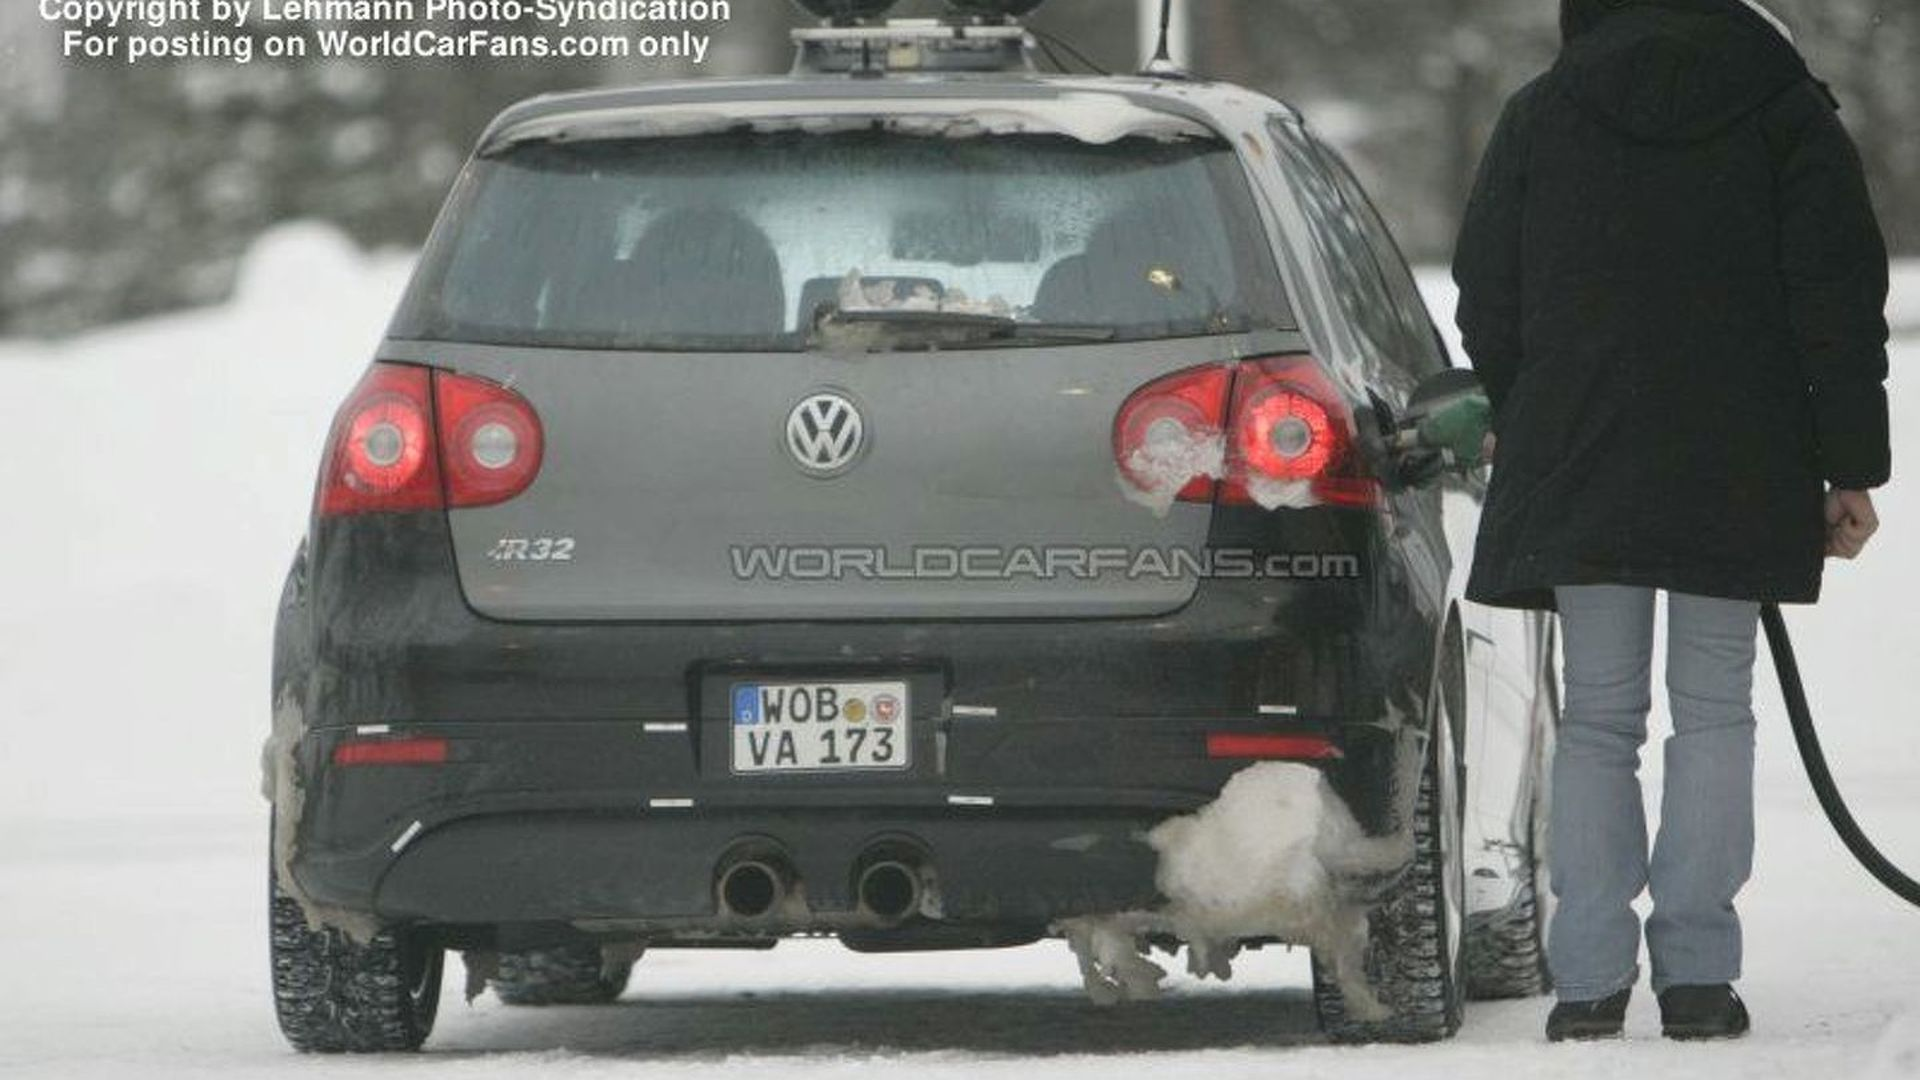 SPY PHOTOS: VW Golf R36